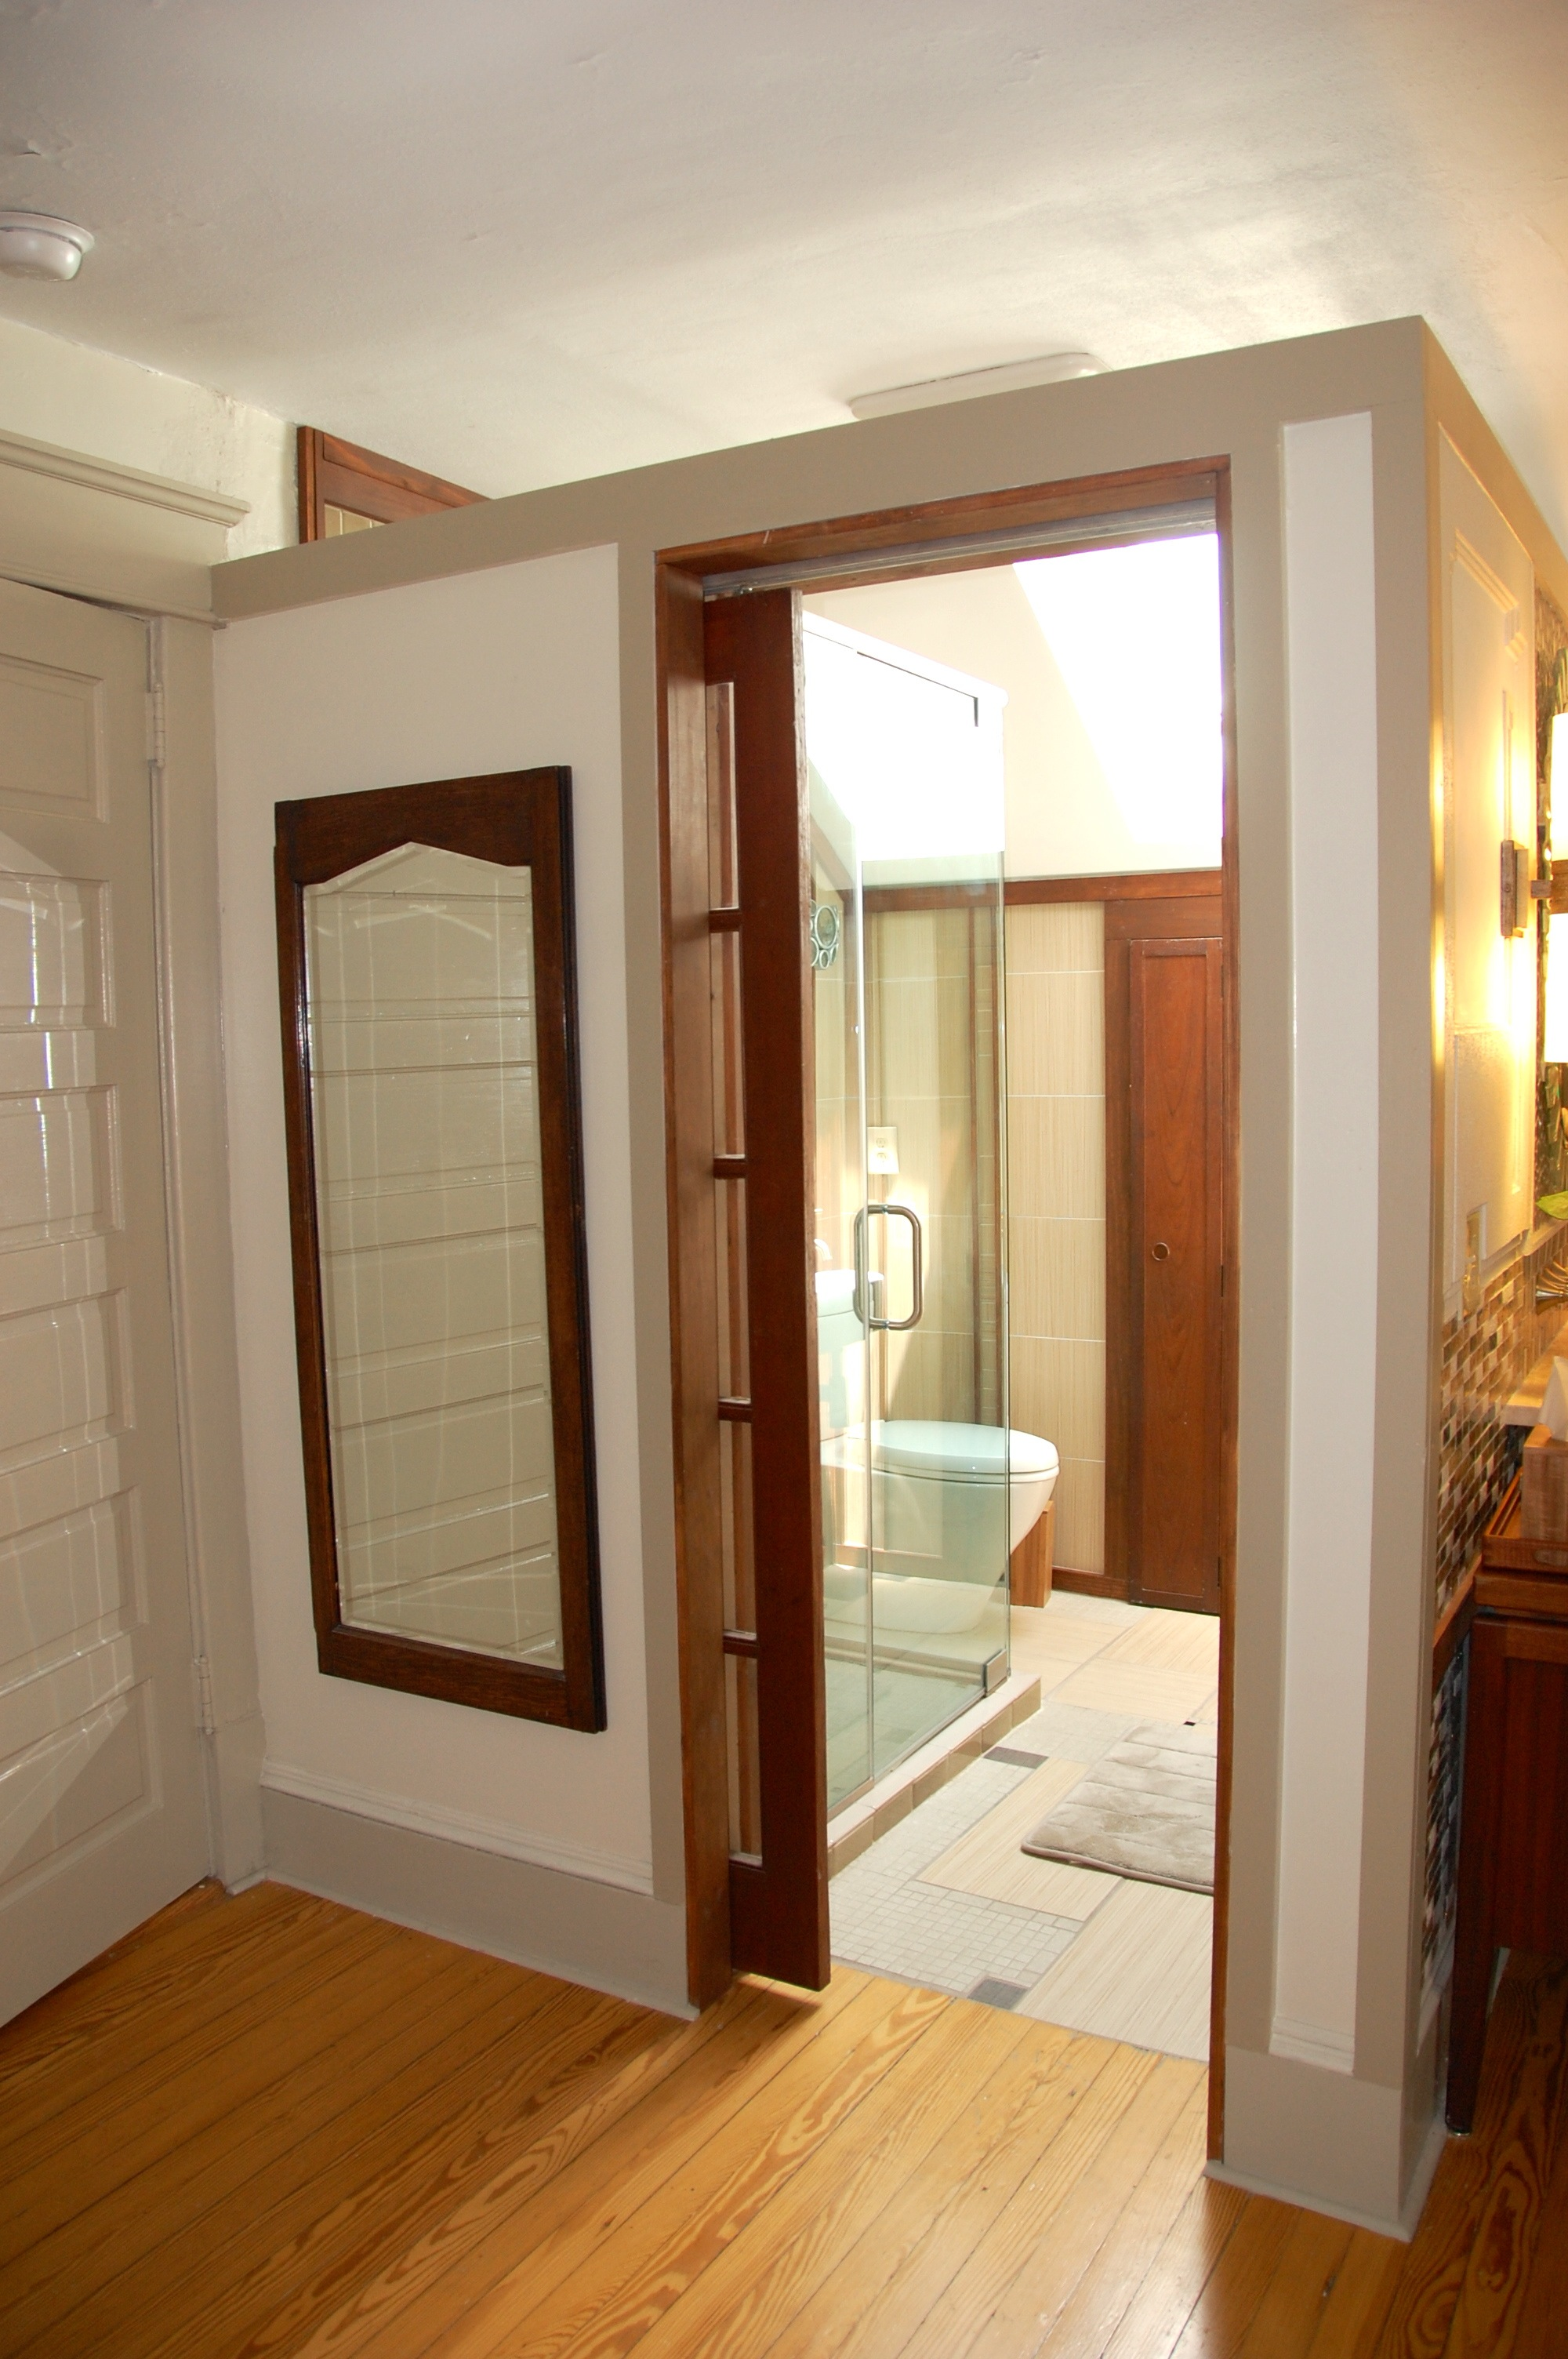 Bathroom pocket doors - Portfolio